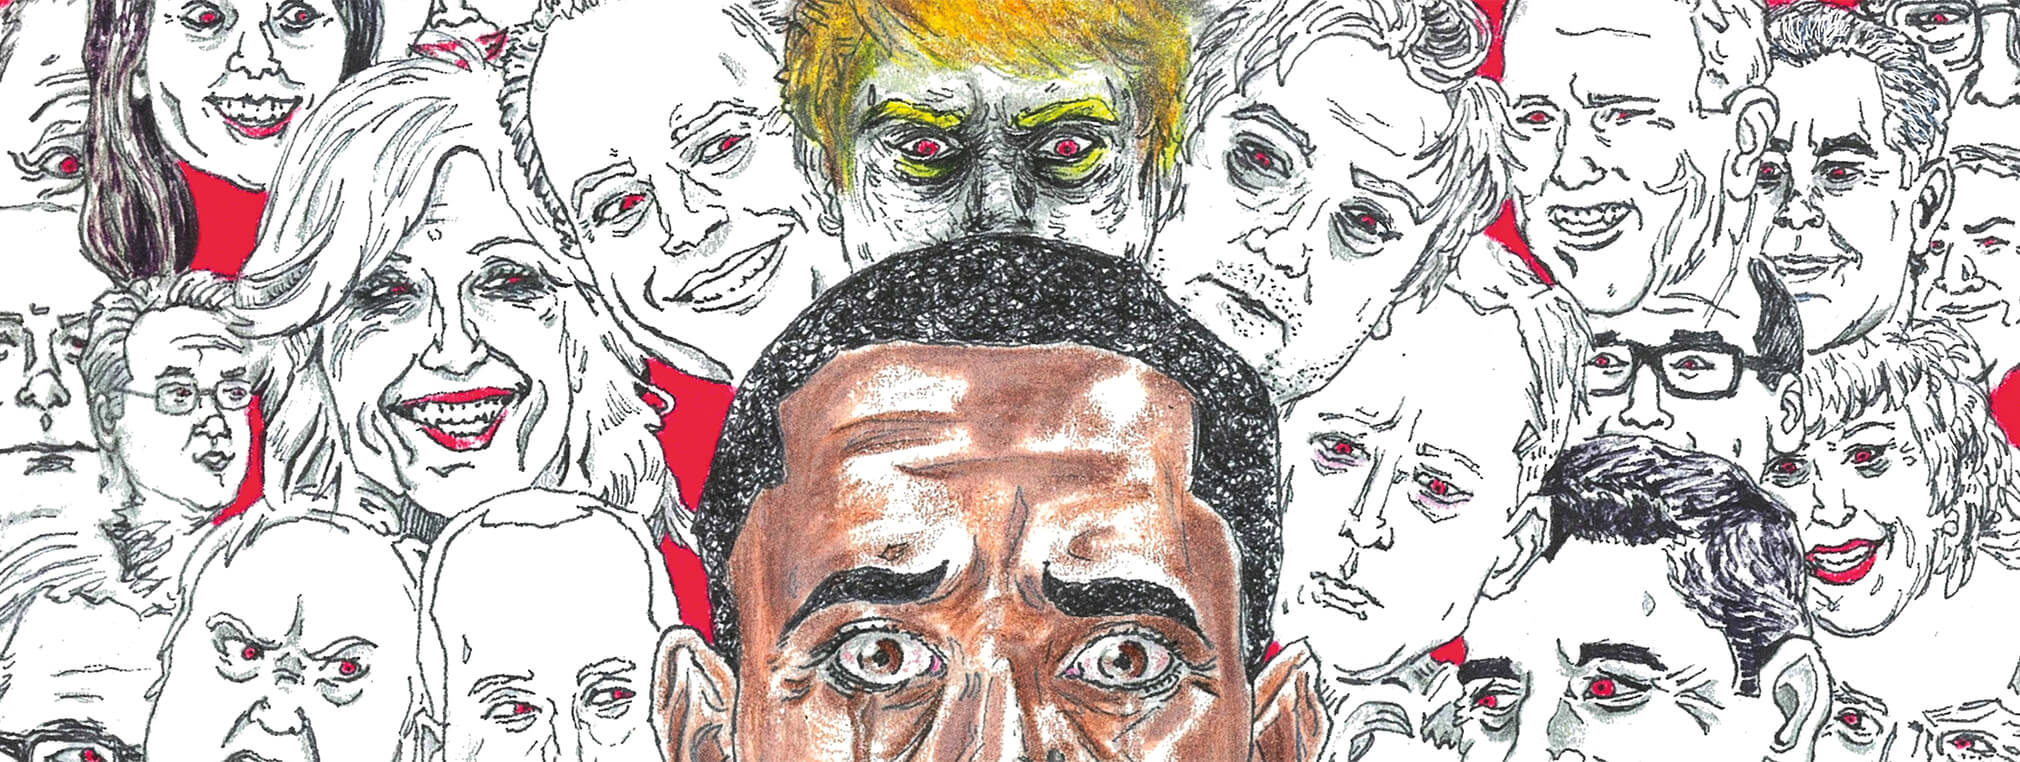 Chris' face has been morphed into the former President Obama. He is sitting in a black suit surrounded by smaller black and white hand-drawn faces- including 'President' Trump.